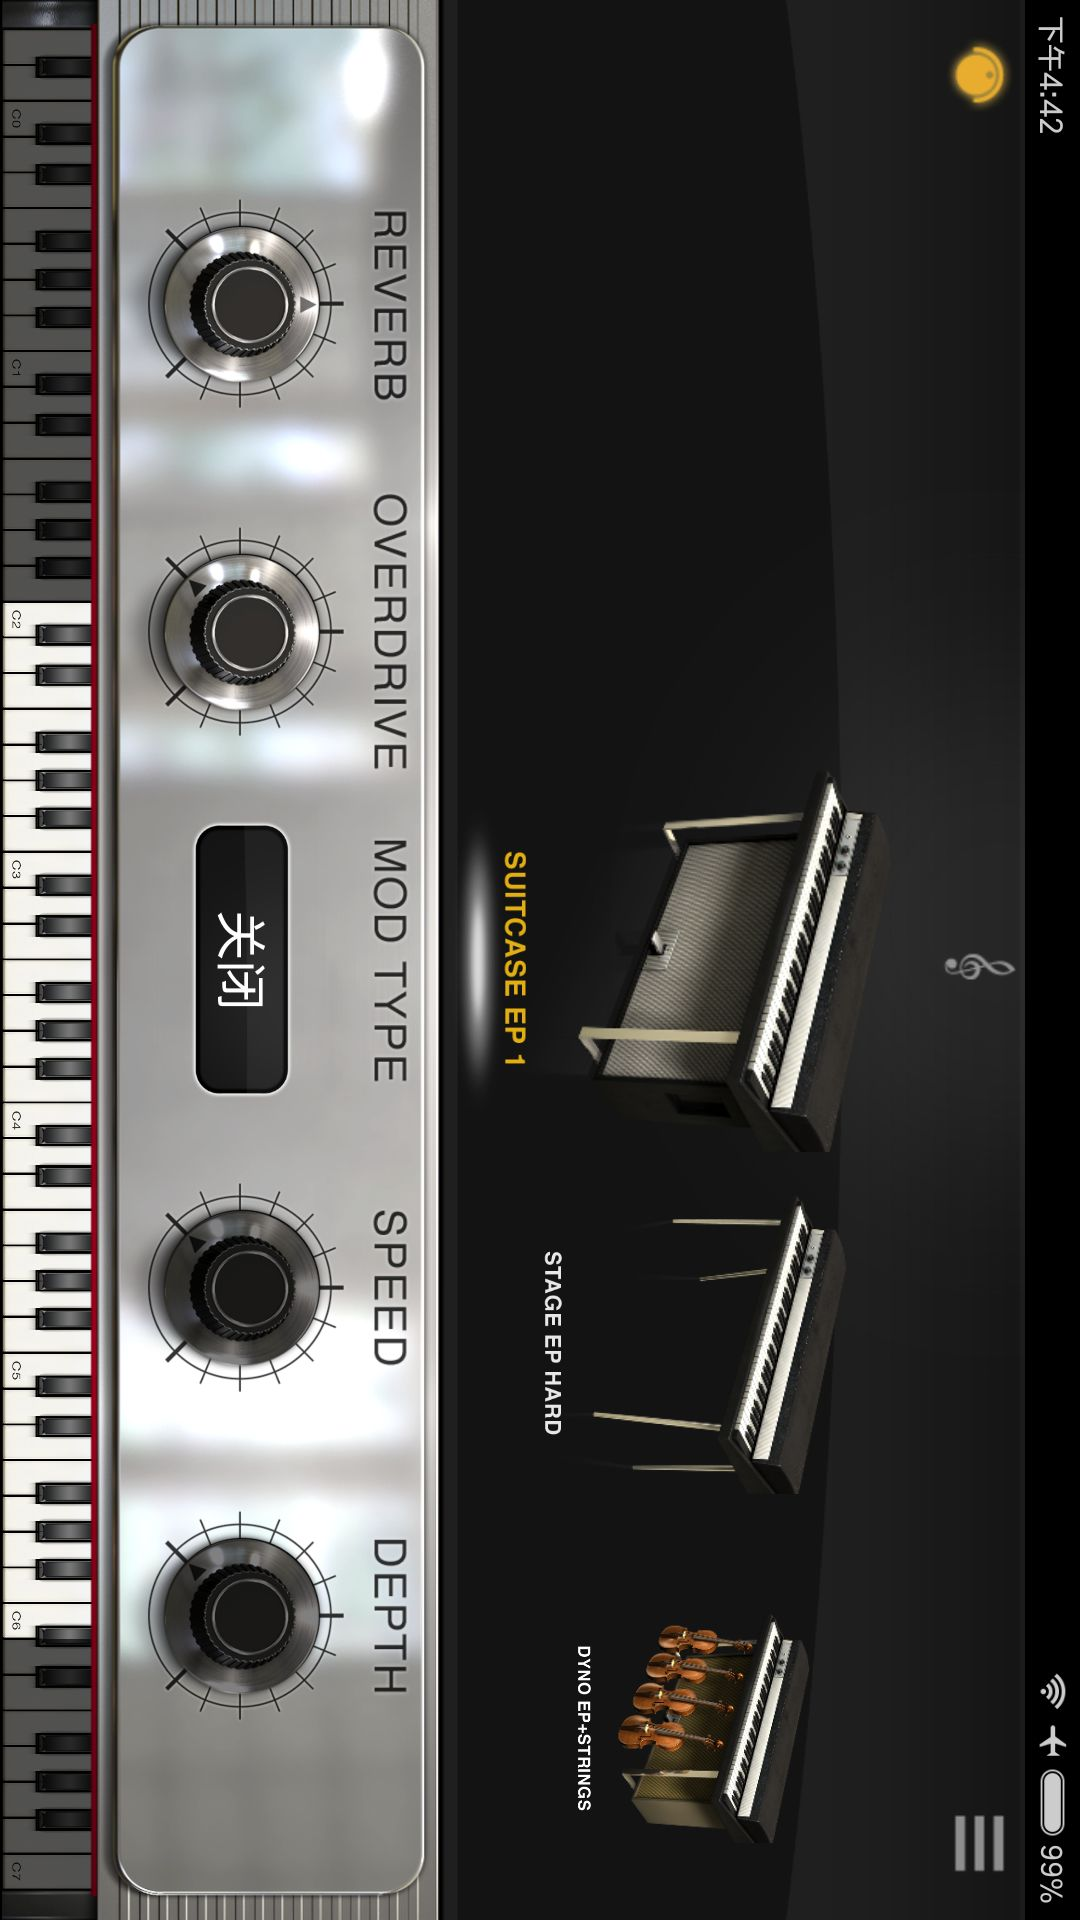 iLectric Piano Free-应用截图